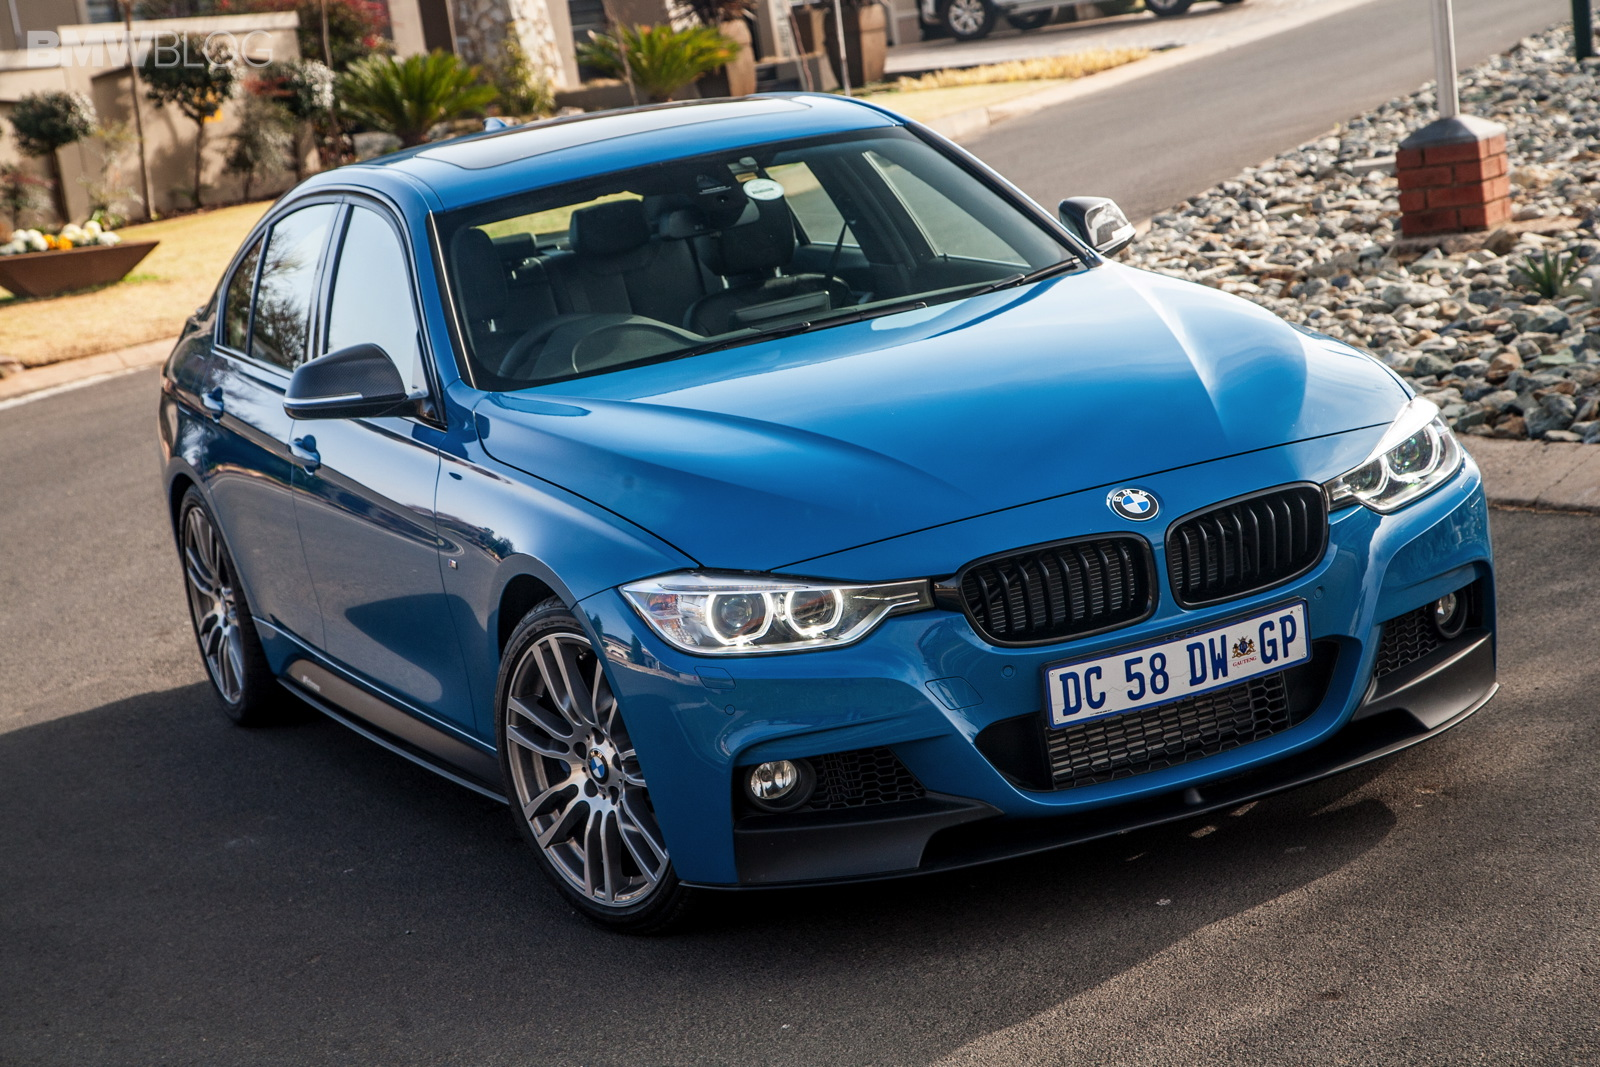 Limited Edition Bmw 3 Series Sedan M Performance Edition In Laguna Seca Blue